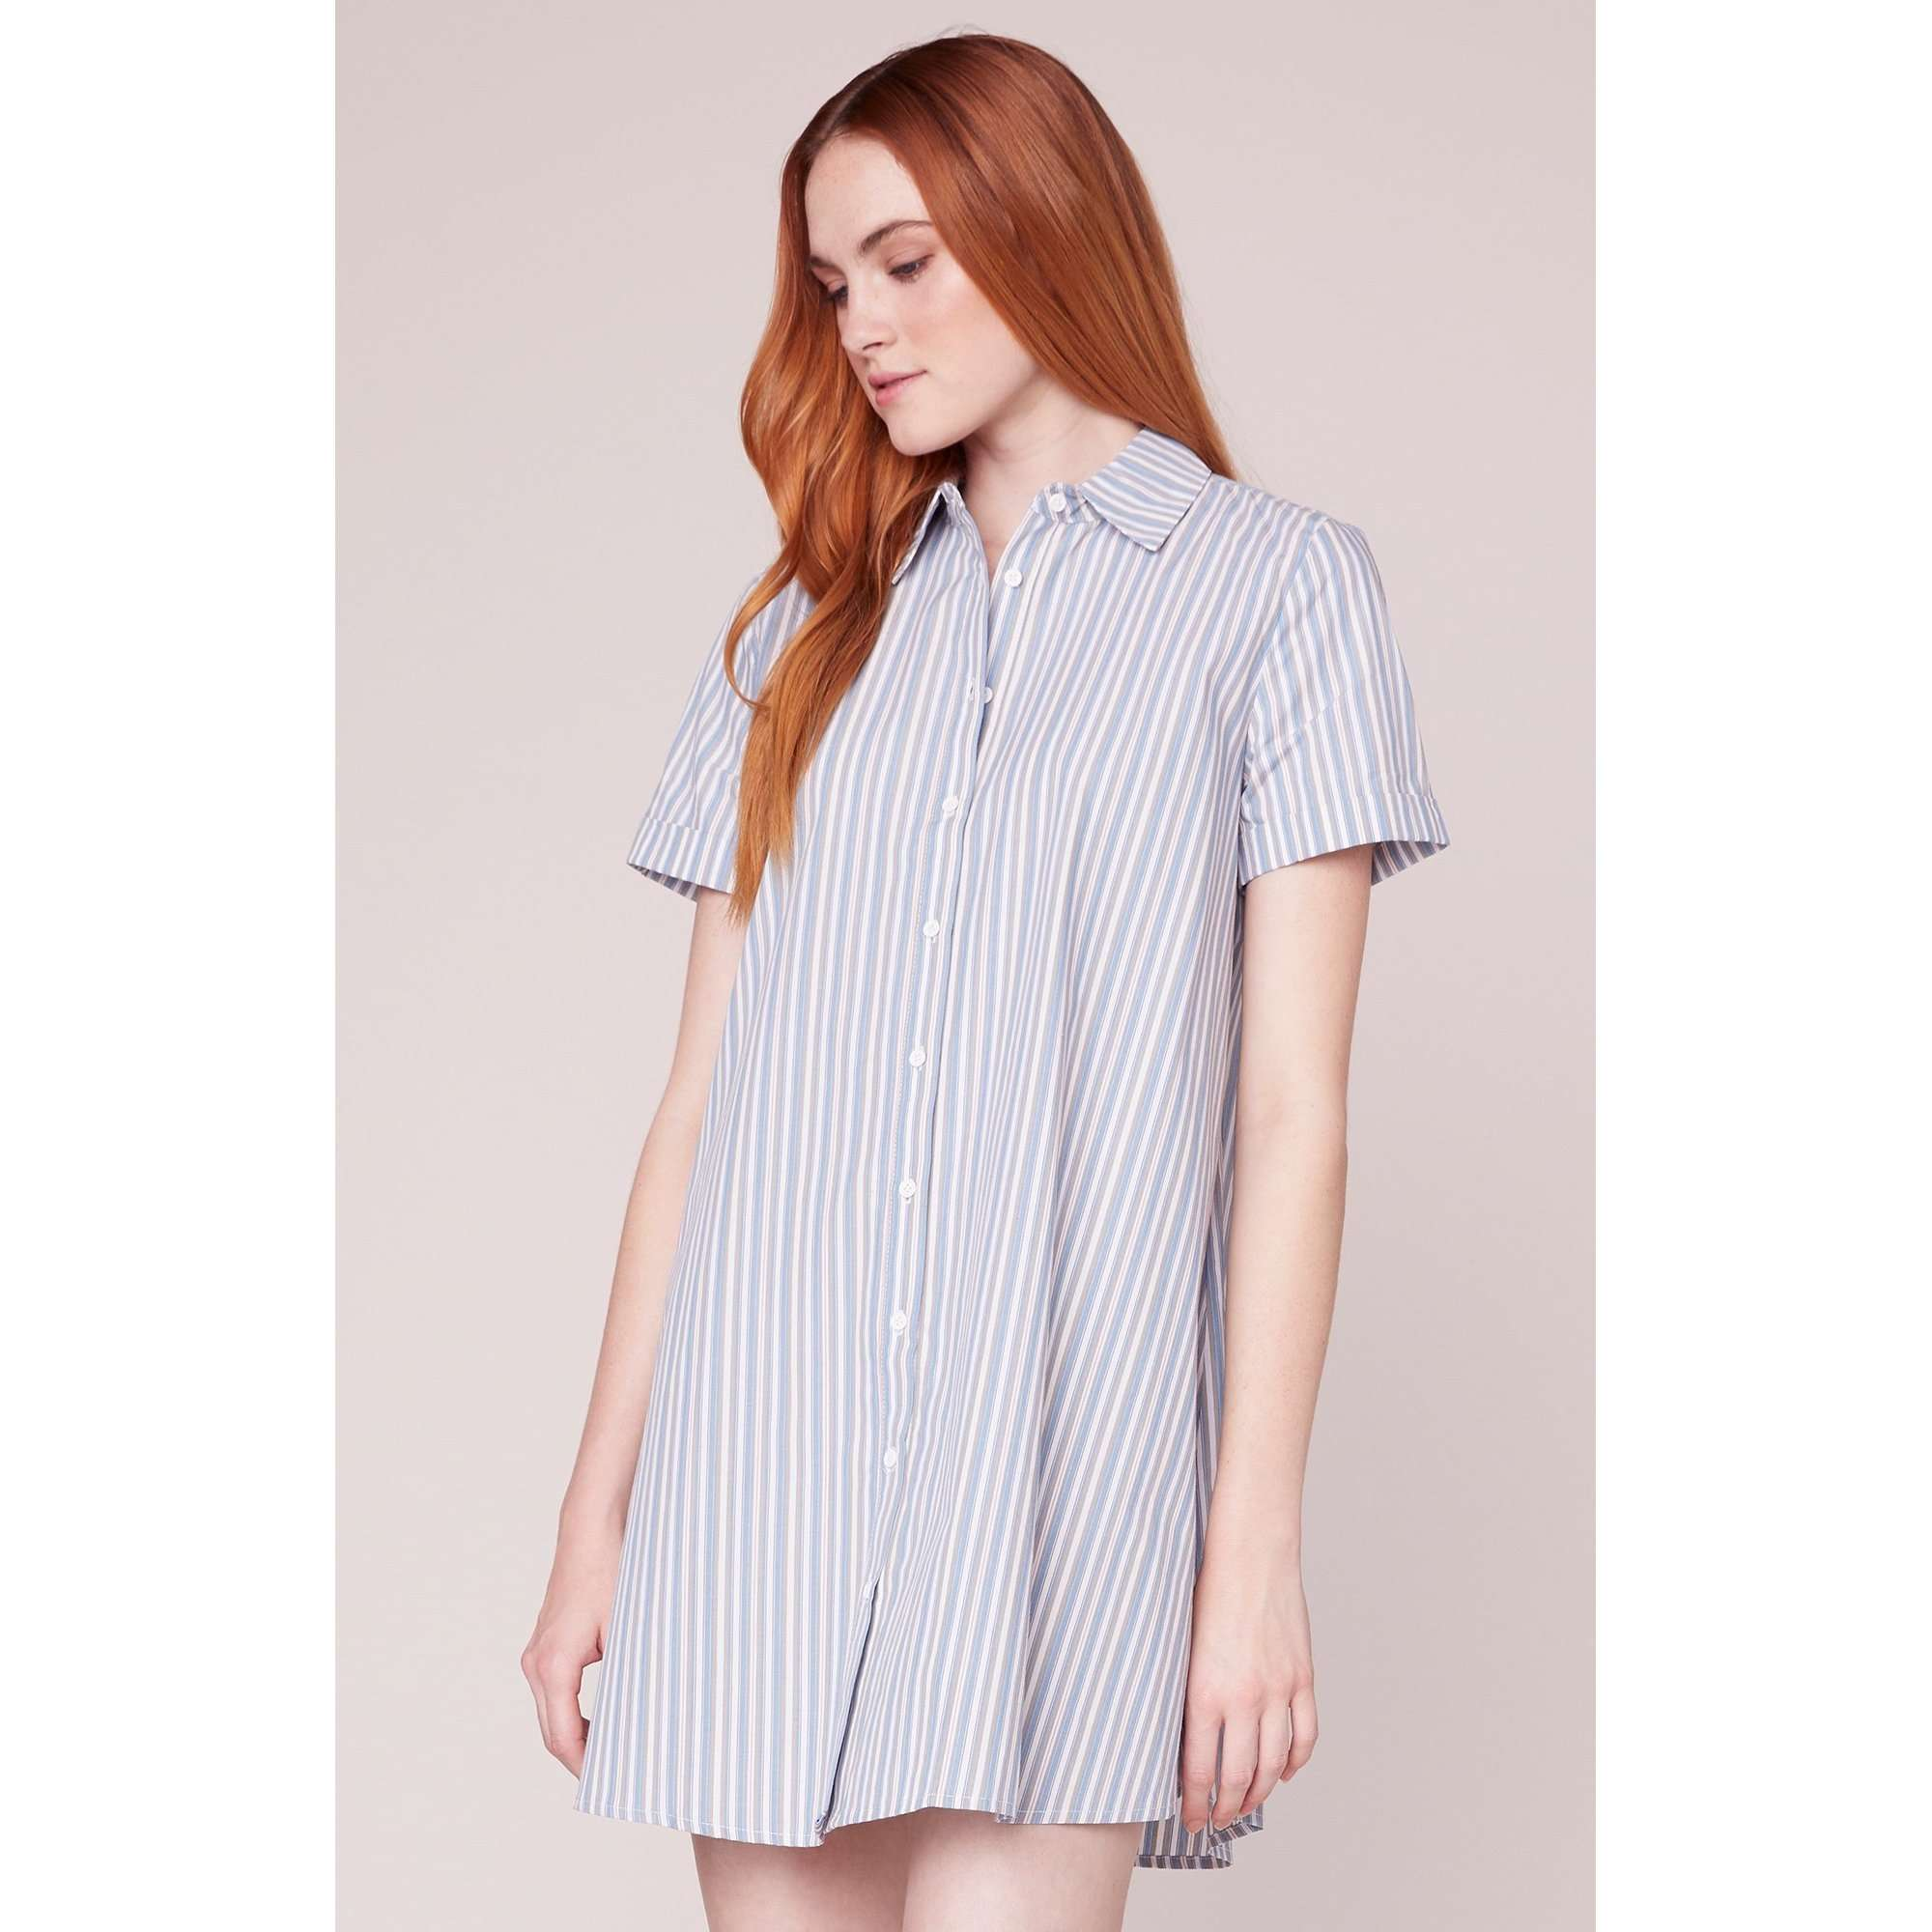 8.28 Boutique:BB Dakota,BB Dakota Stripe a Personality Dress,Dress